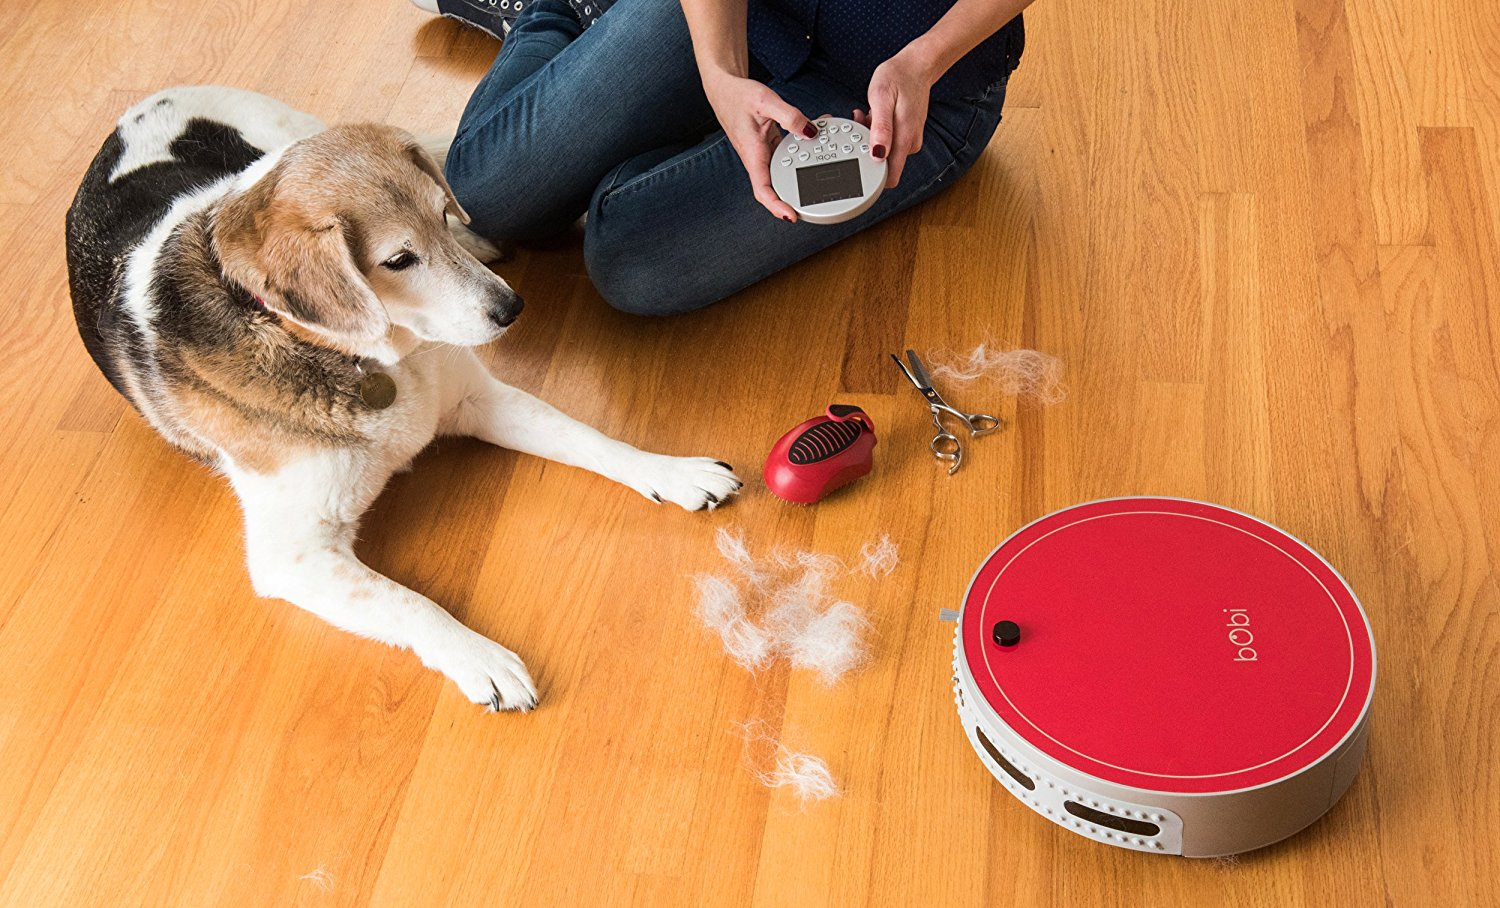 Best Robot Vacuum Cleaner For Pet Hair Roomba For